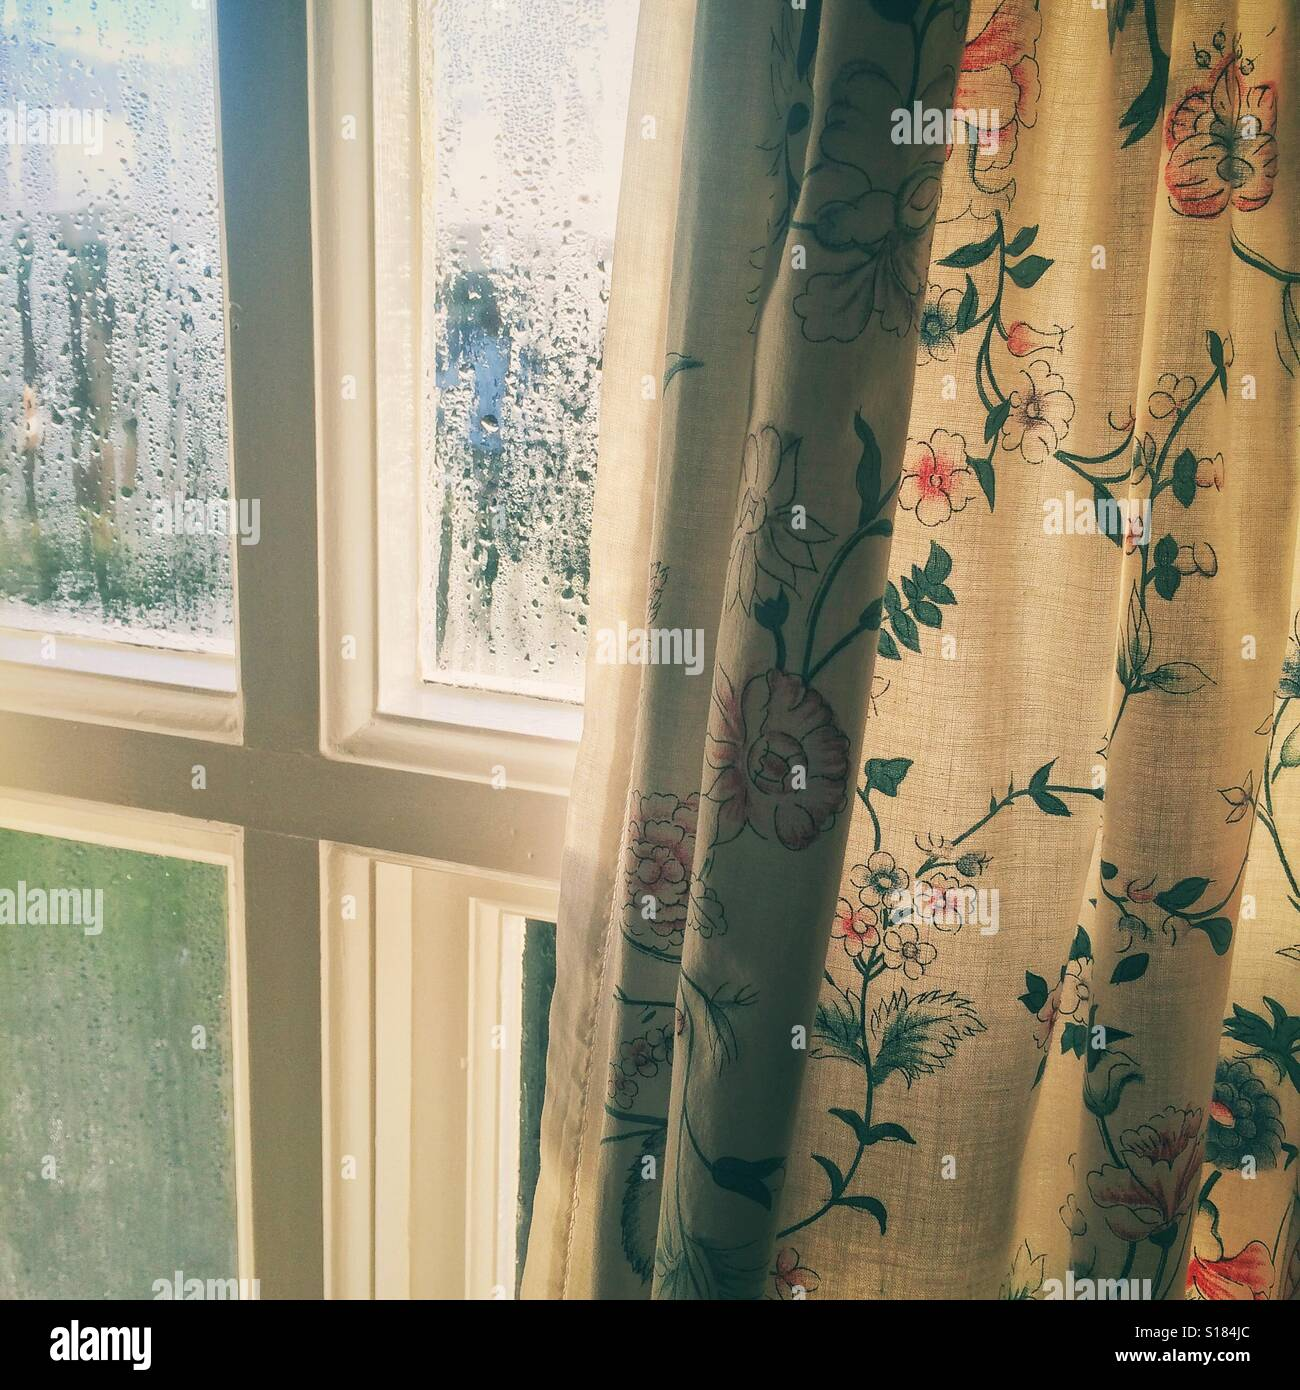 A window and curtains - Stock Image